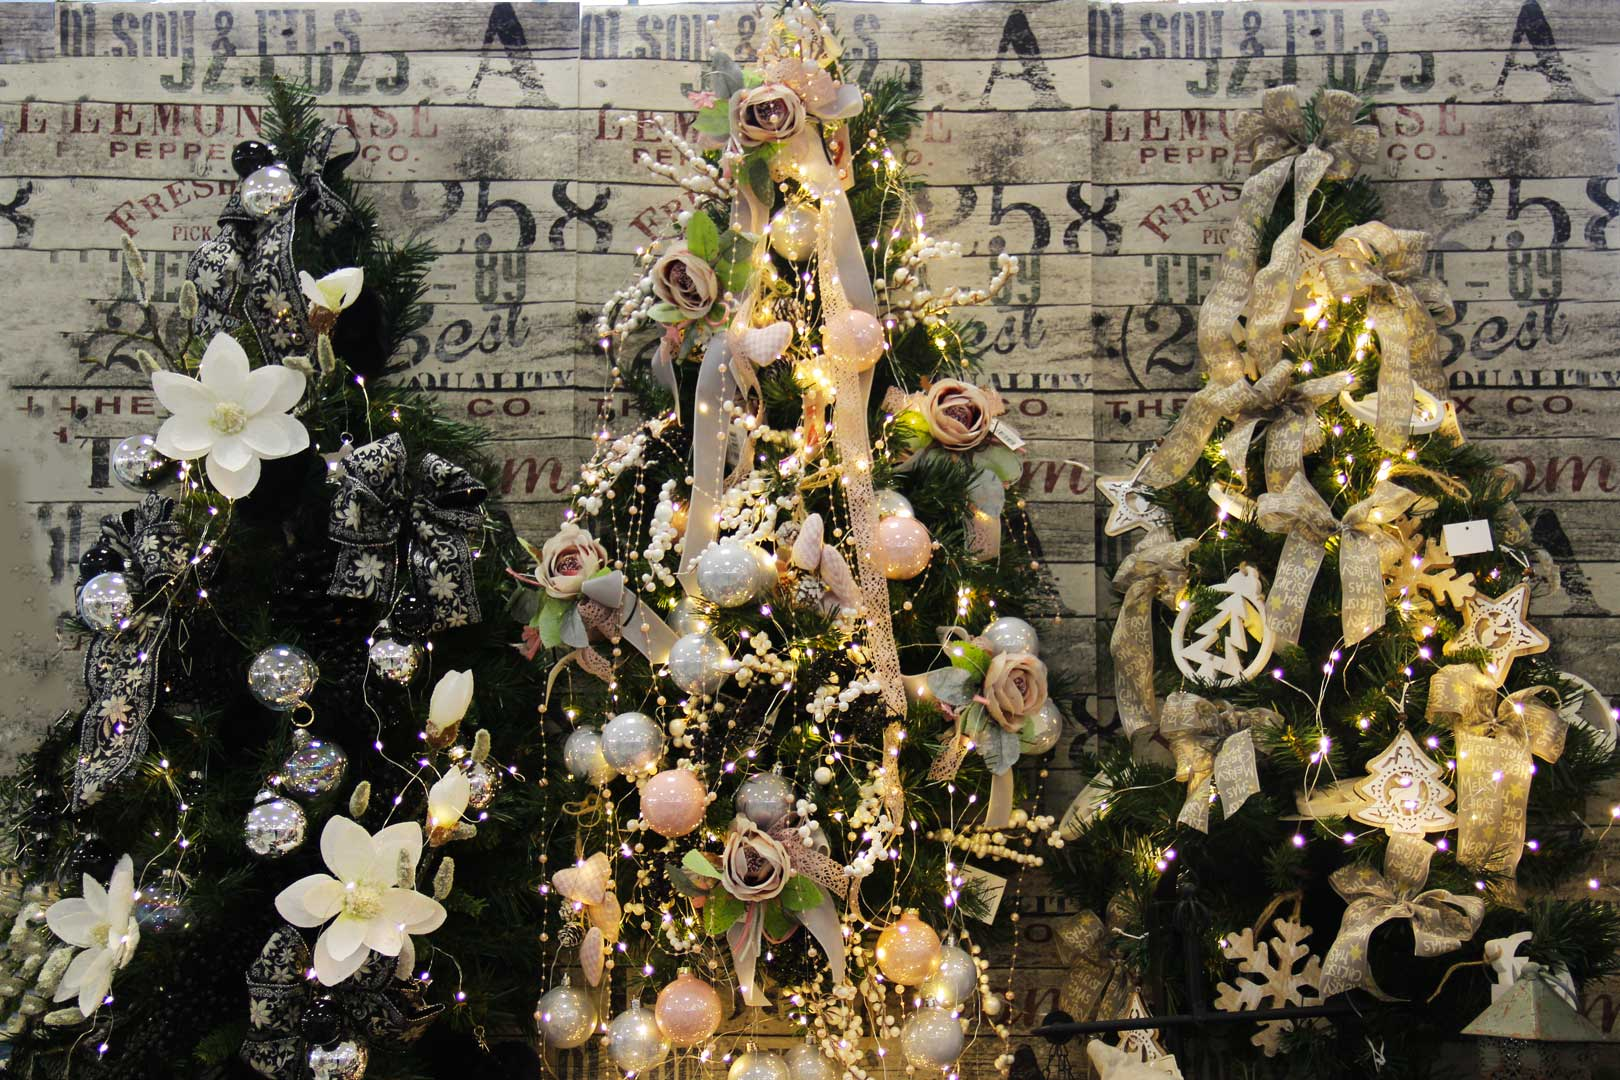 http://www.specialdays-eventi.it/wp-content/uploads/2017/11/albero-natale-special-days-4.jpg